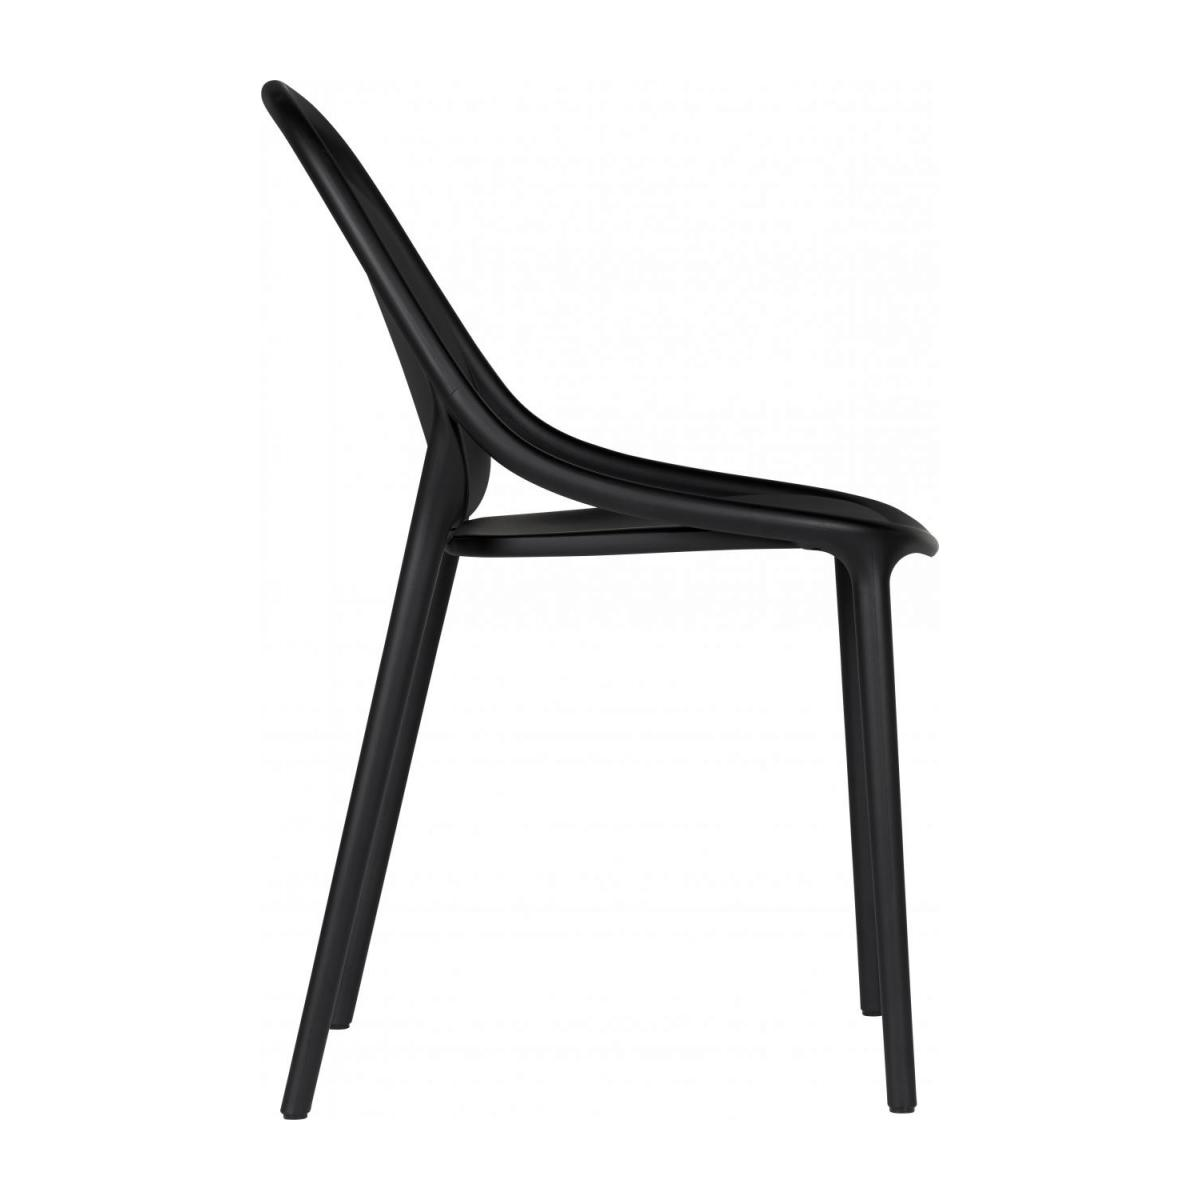 Chaise en polypropylène - Noir - Design by Eugeni Quitllet n°5